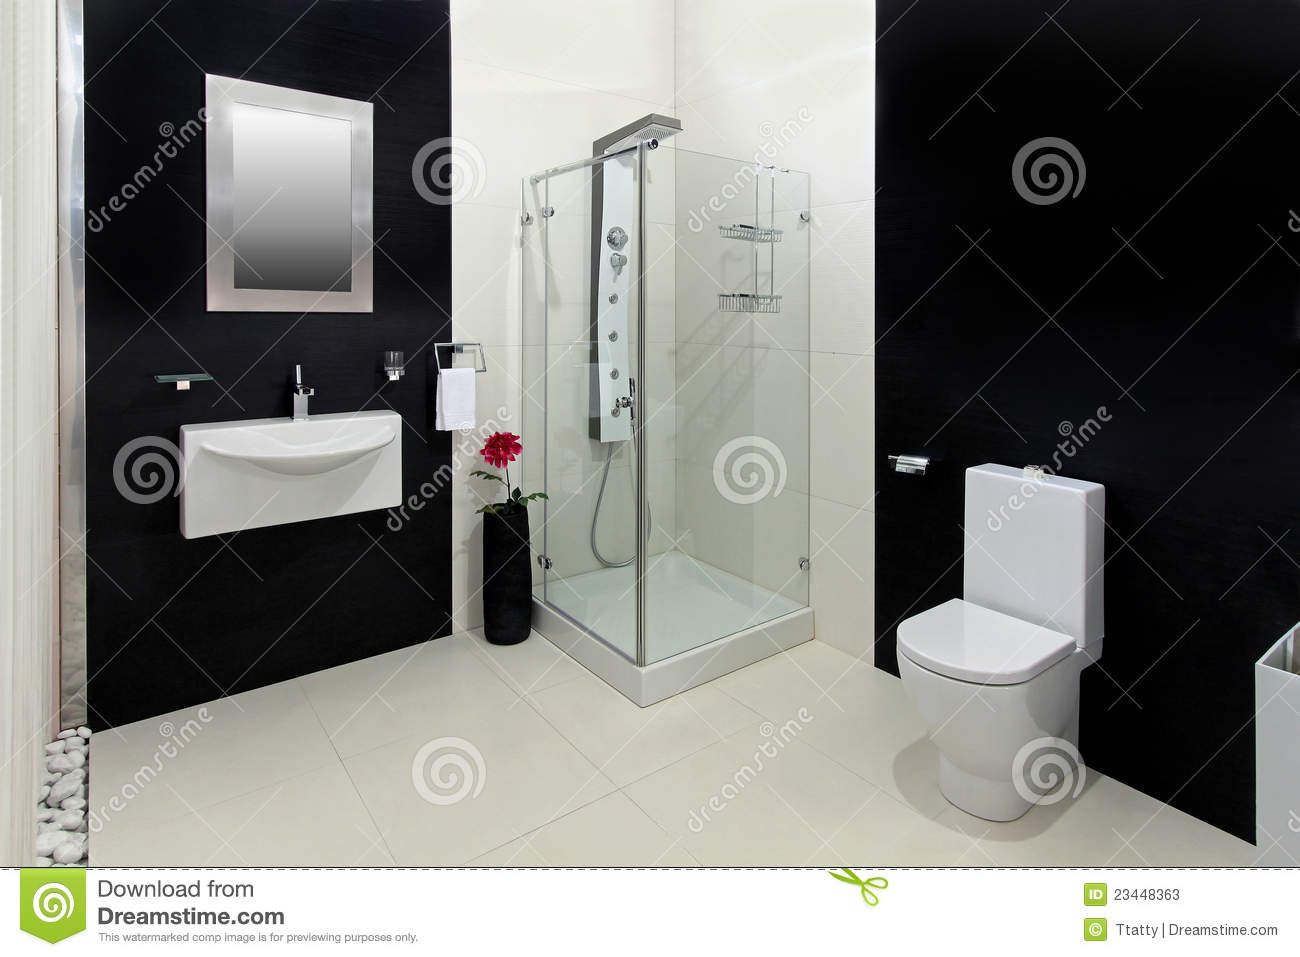 small bathroom black and white black white bathroom stock photos image 23448363 24147